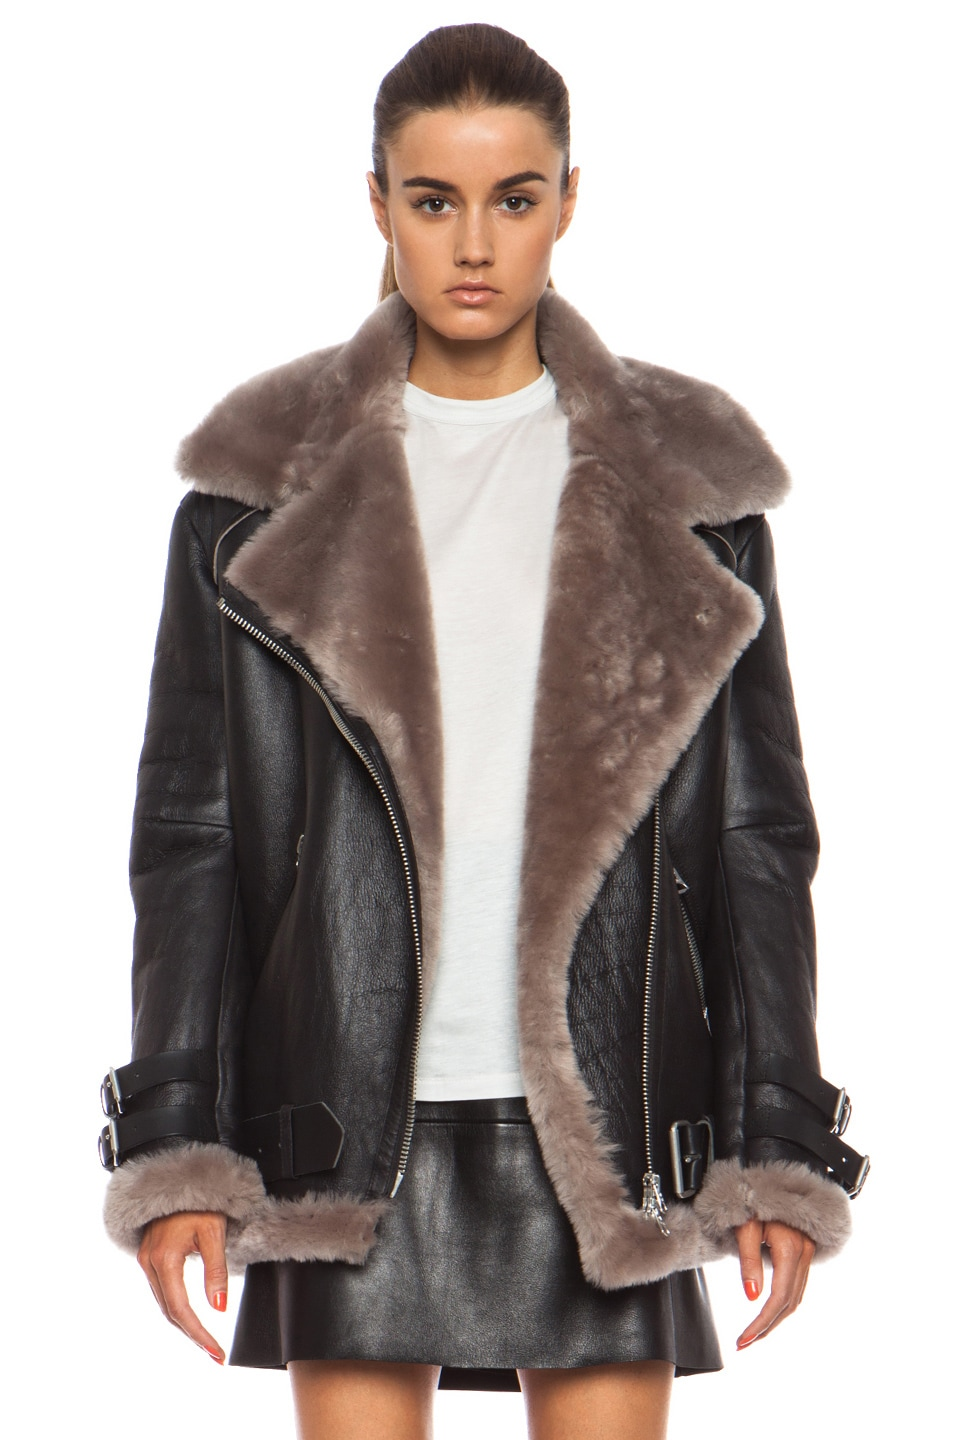 shearling sheepskin coats for wo with Displayproduct Jsp on 443182419567447148 also DisplayProduct jsp in addition WO9gaM 0fgABDgZZ further Prada Womenswear Fall Winter 2014 further White Shearling Coat 6060.